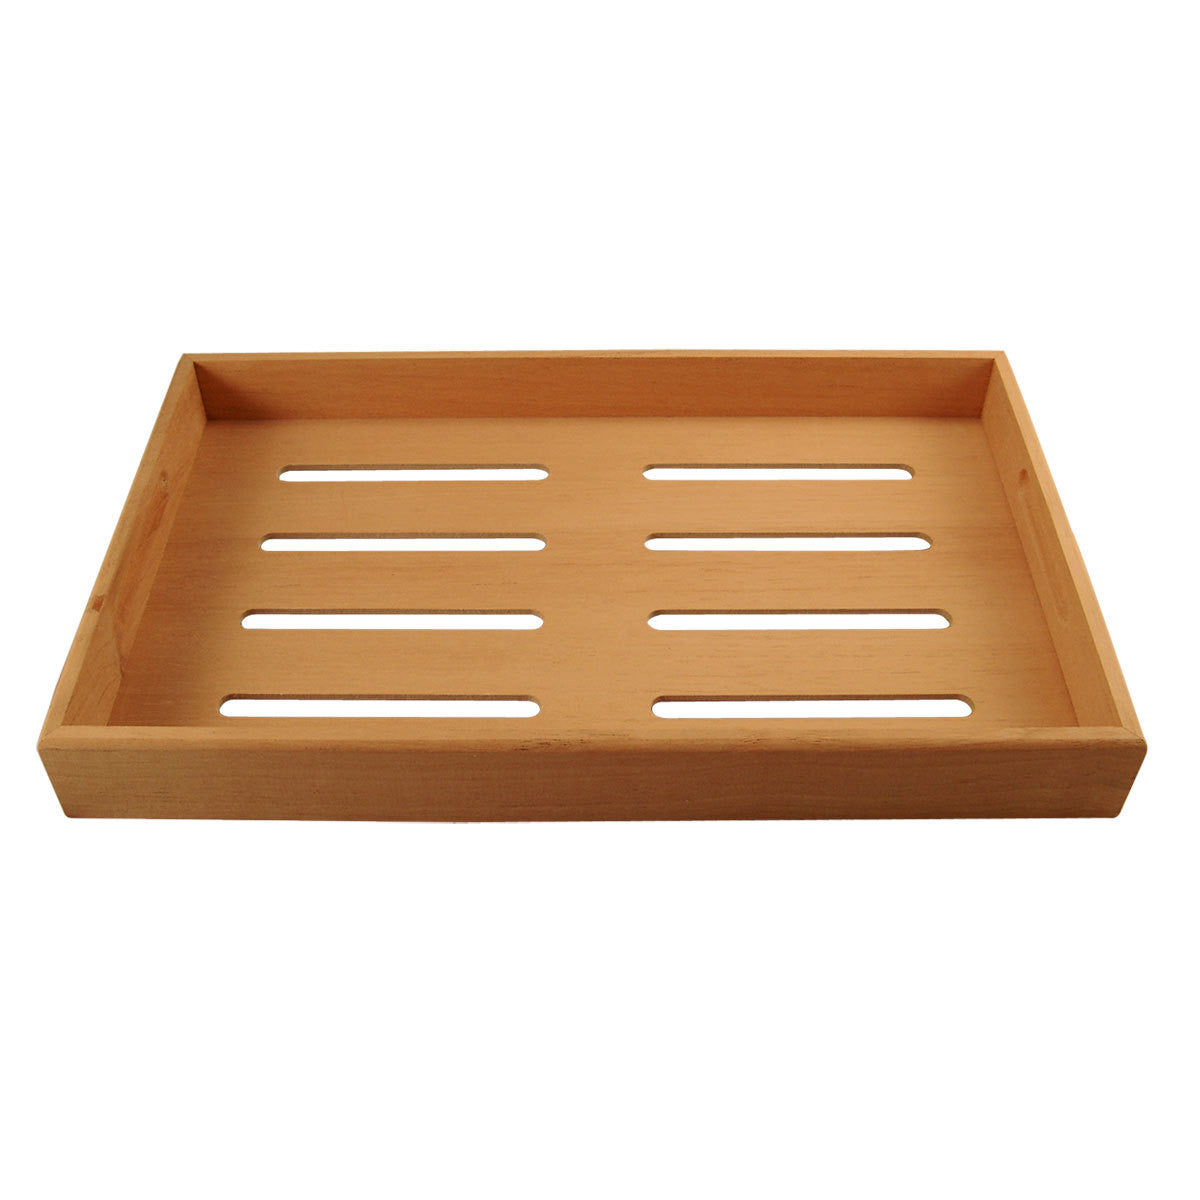 Cedar Trays for Cigar Humidors Cuban Crafters Cuban Exotica Humidor - Humidors Wholesaler